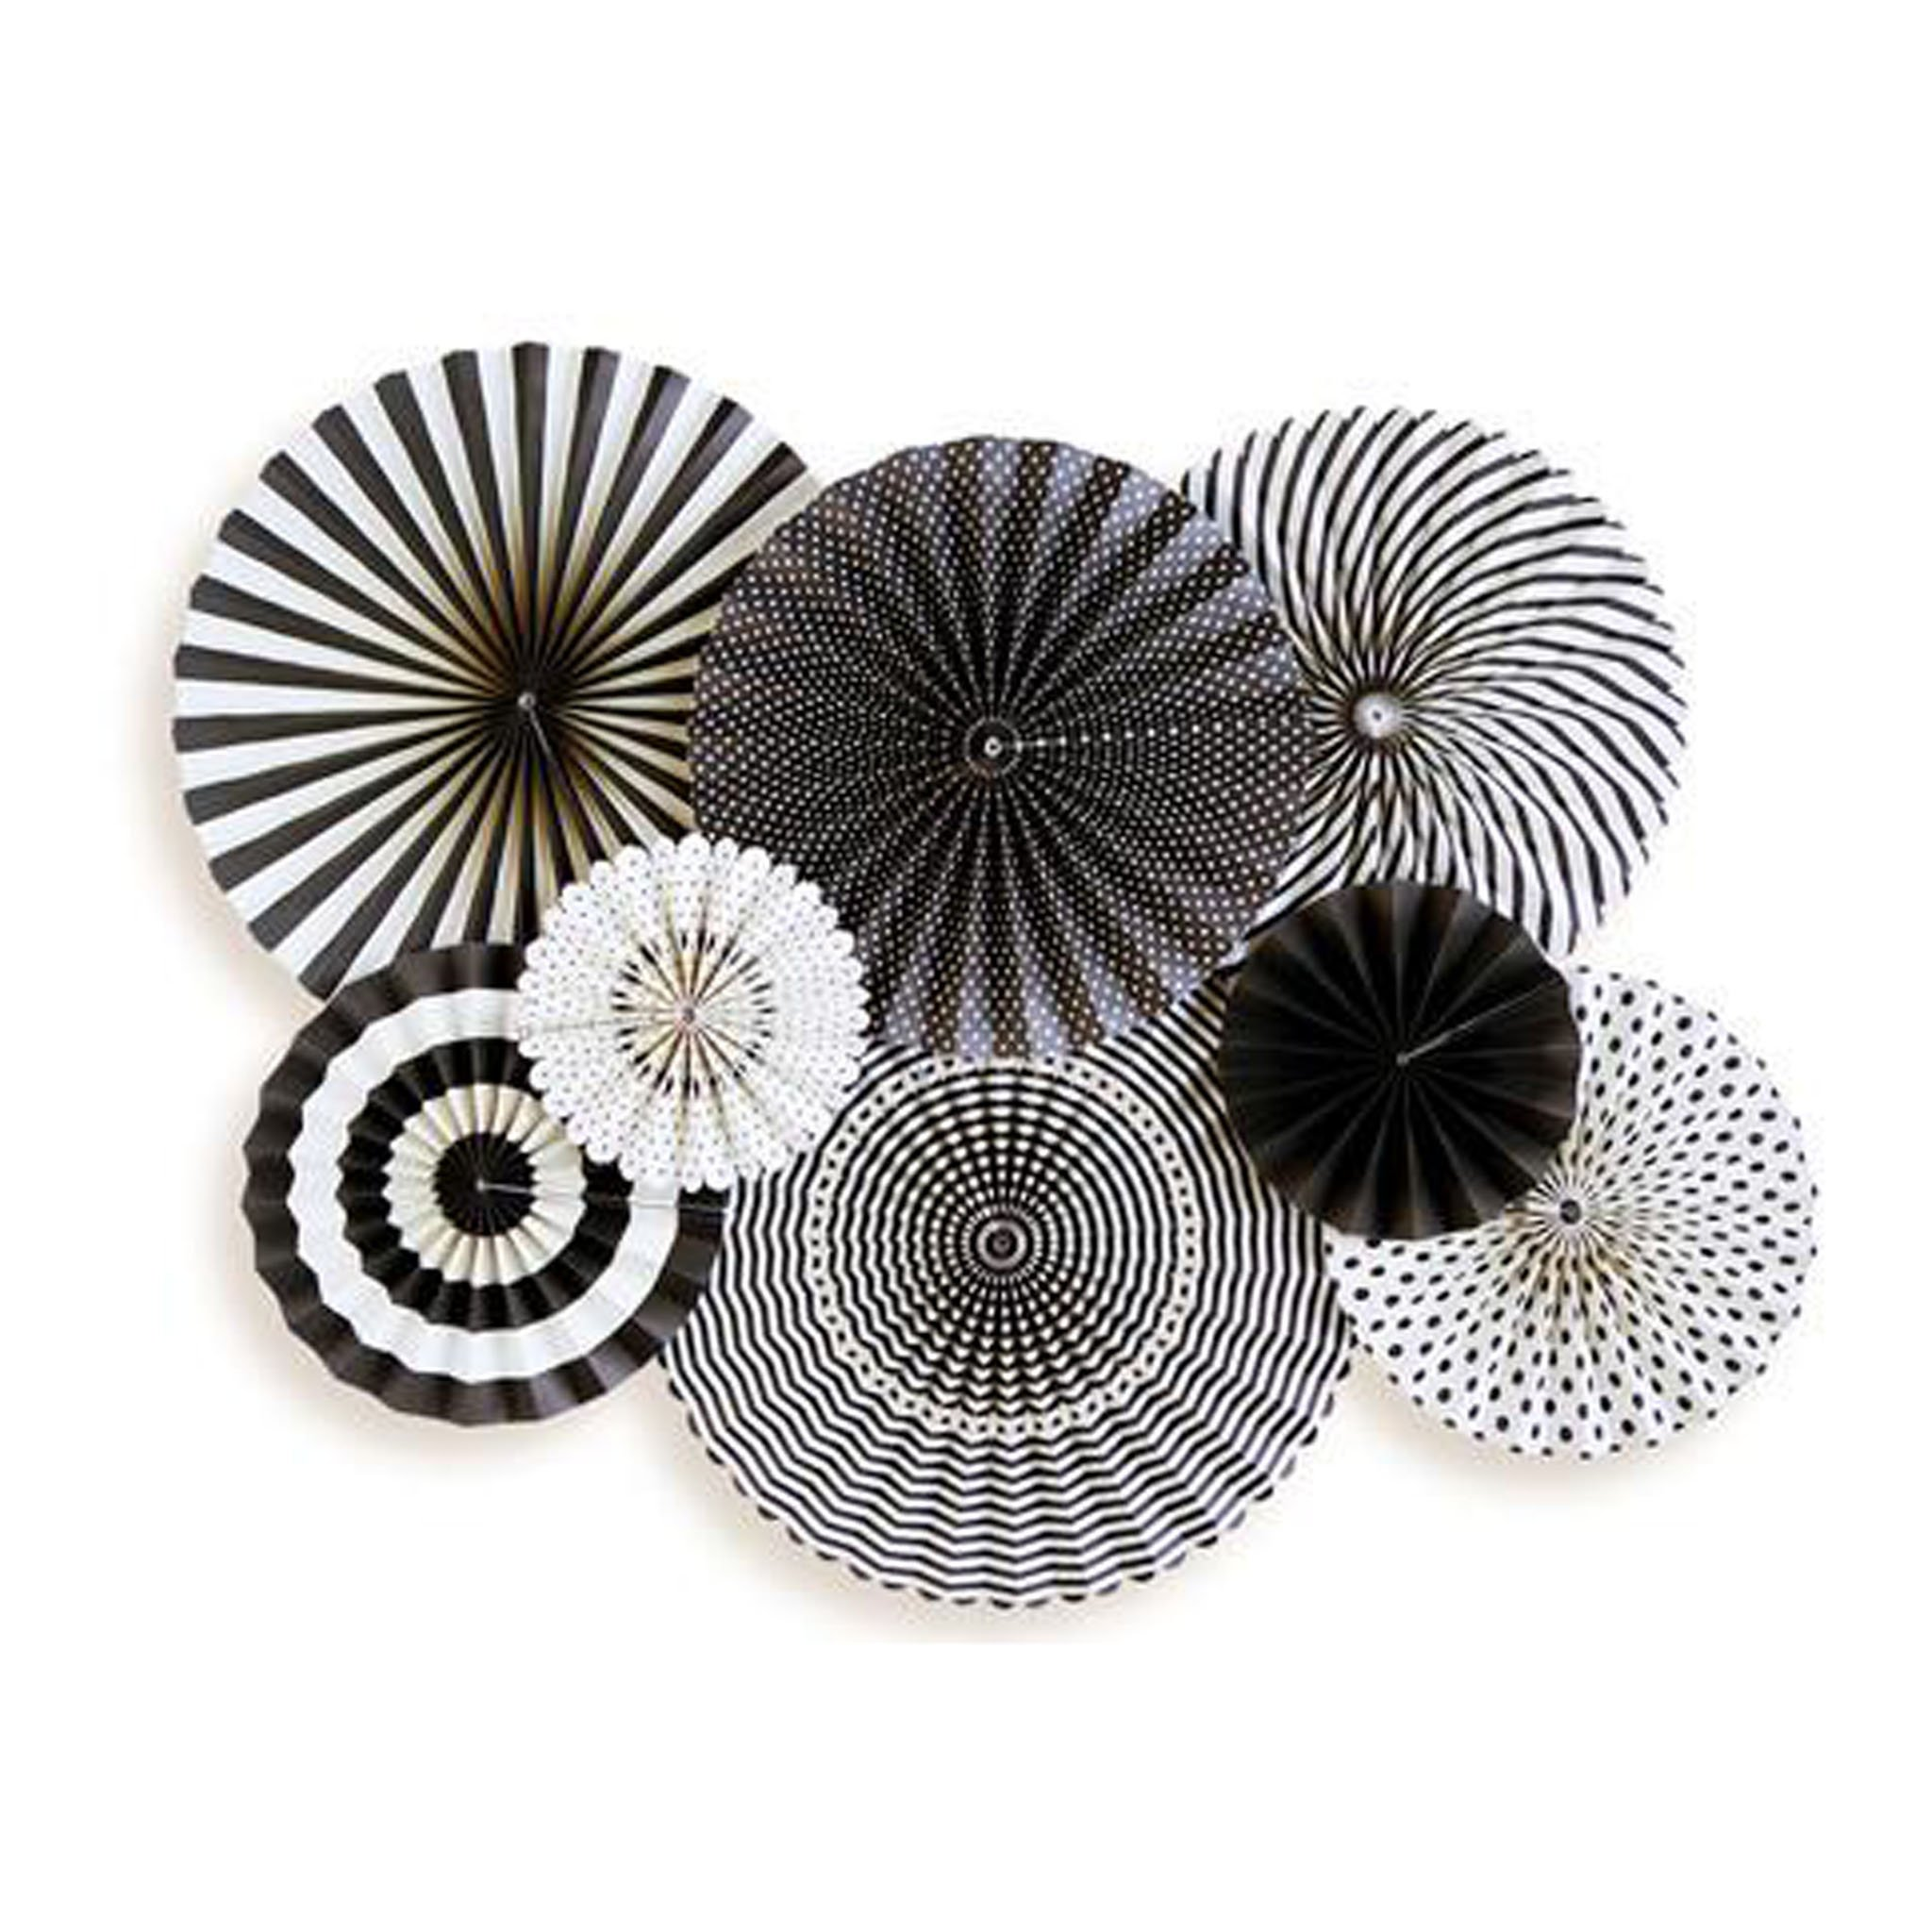 BUY ME / NEW ITEM $24.99 each Black & White Pack of 8 Paper Party Fans